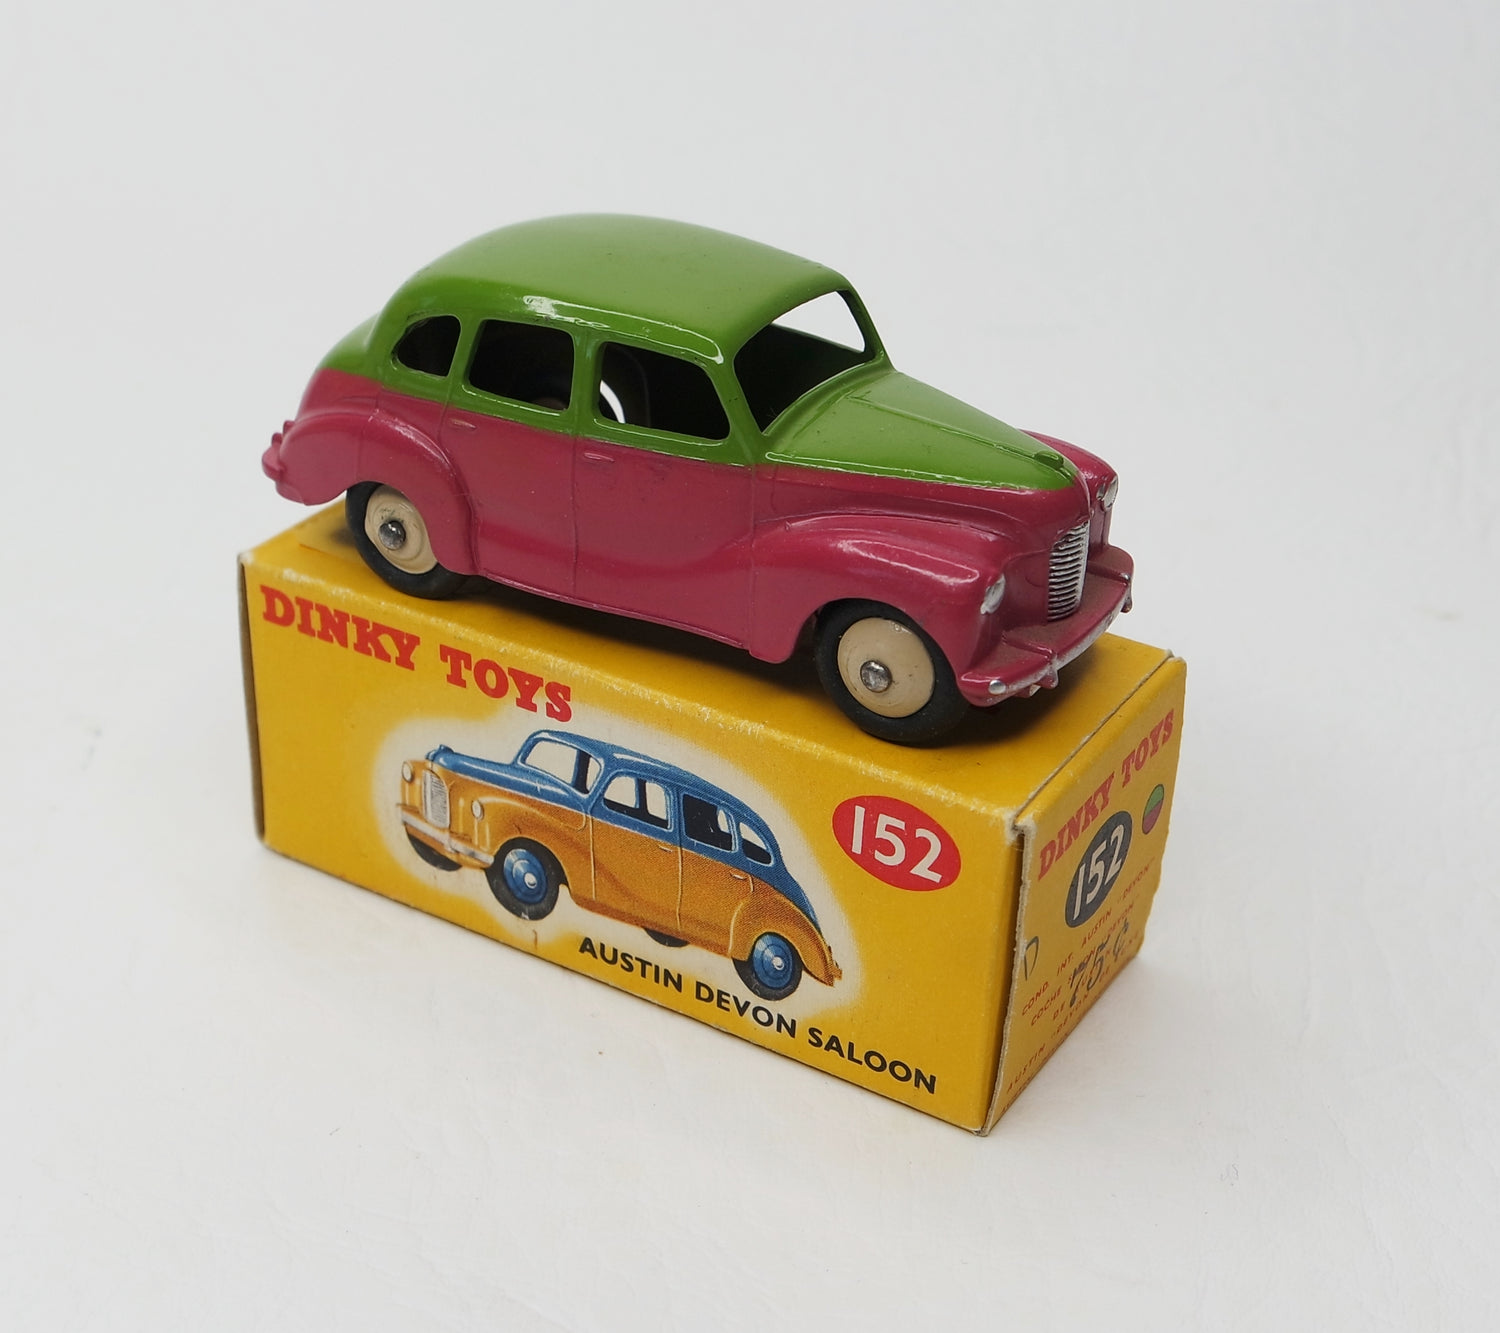 Dinky Toys 152 Austin Devon Virtually Mint/Boxed